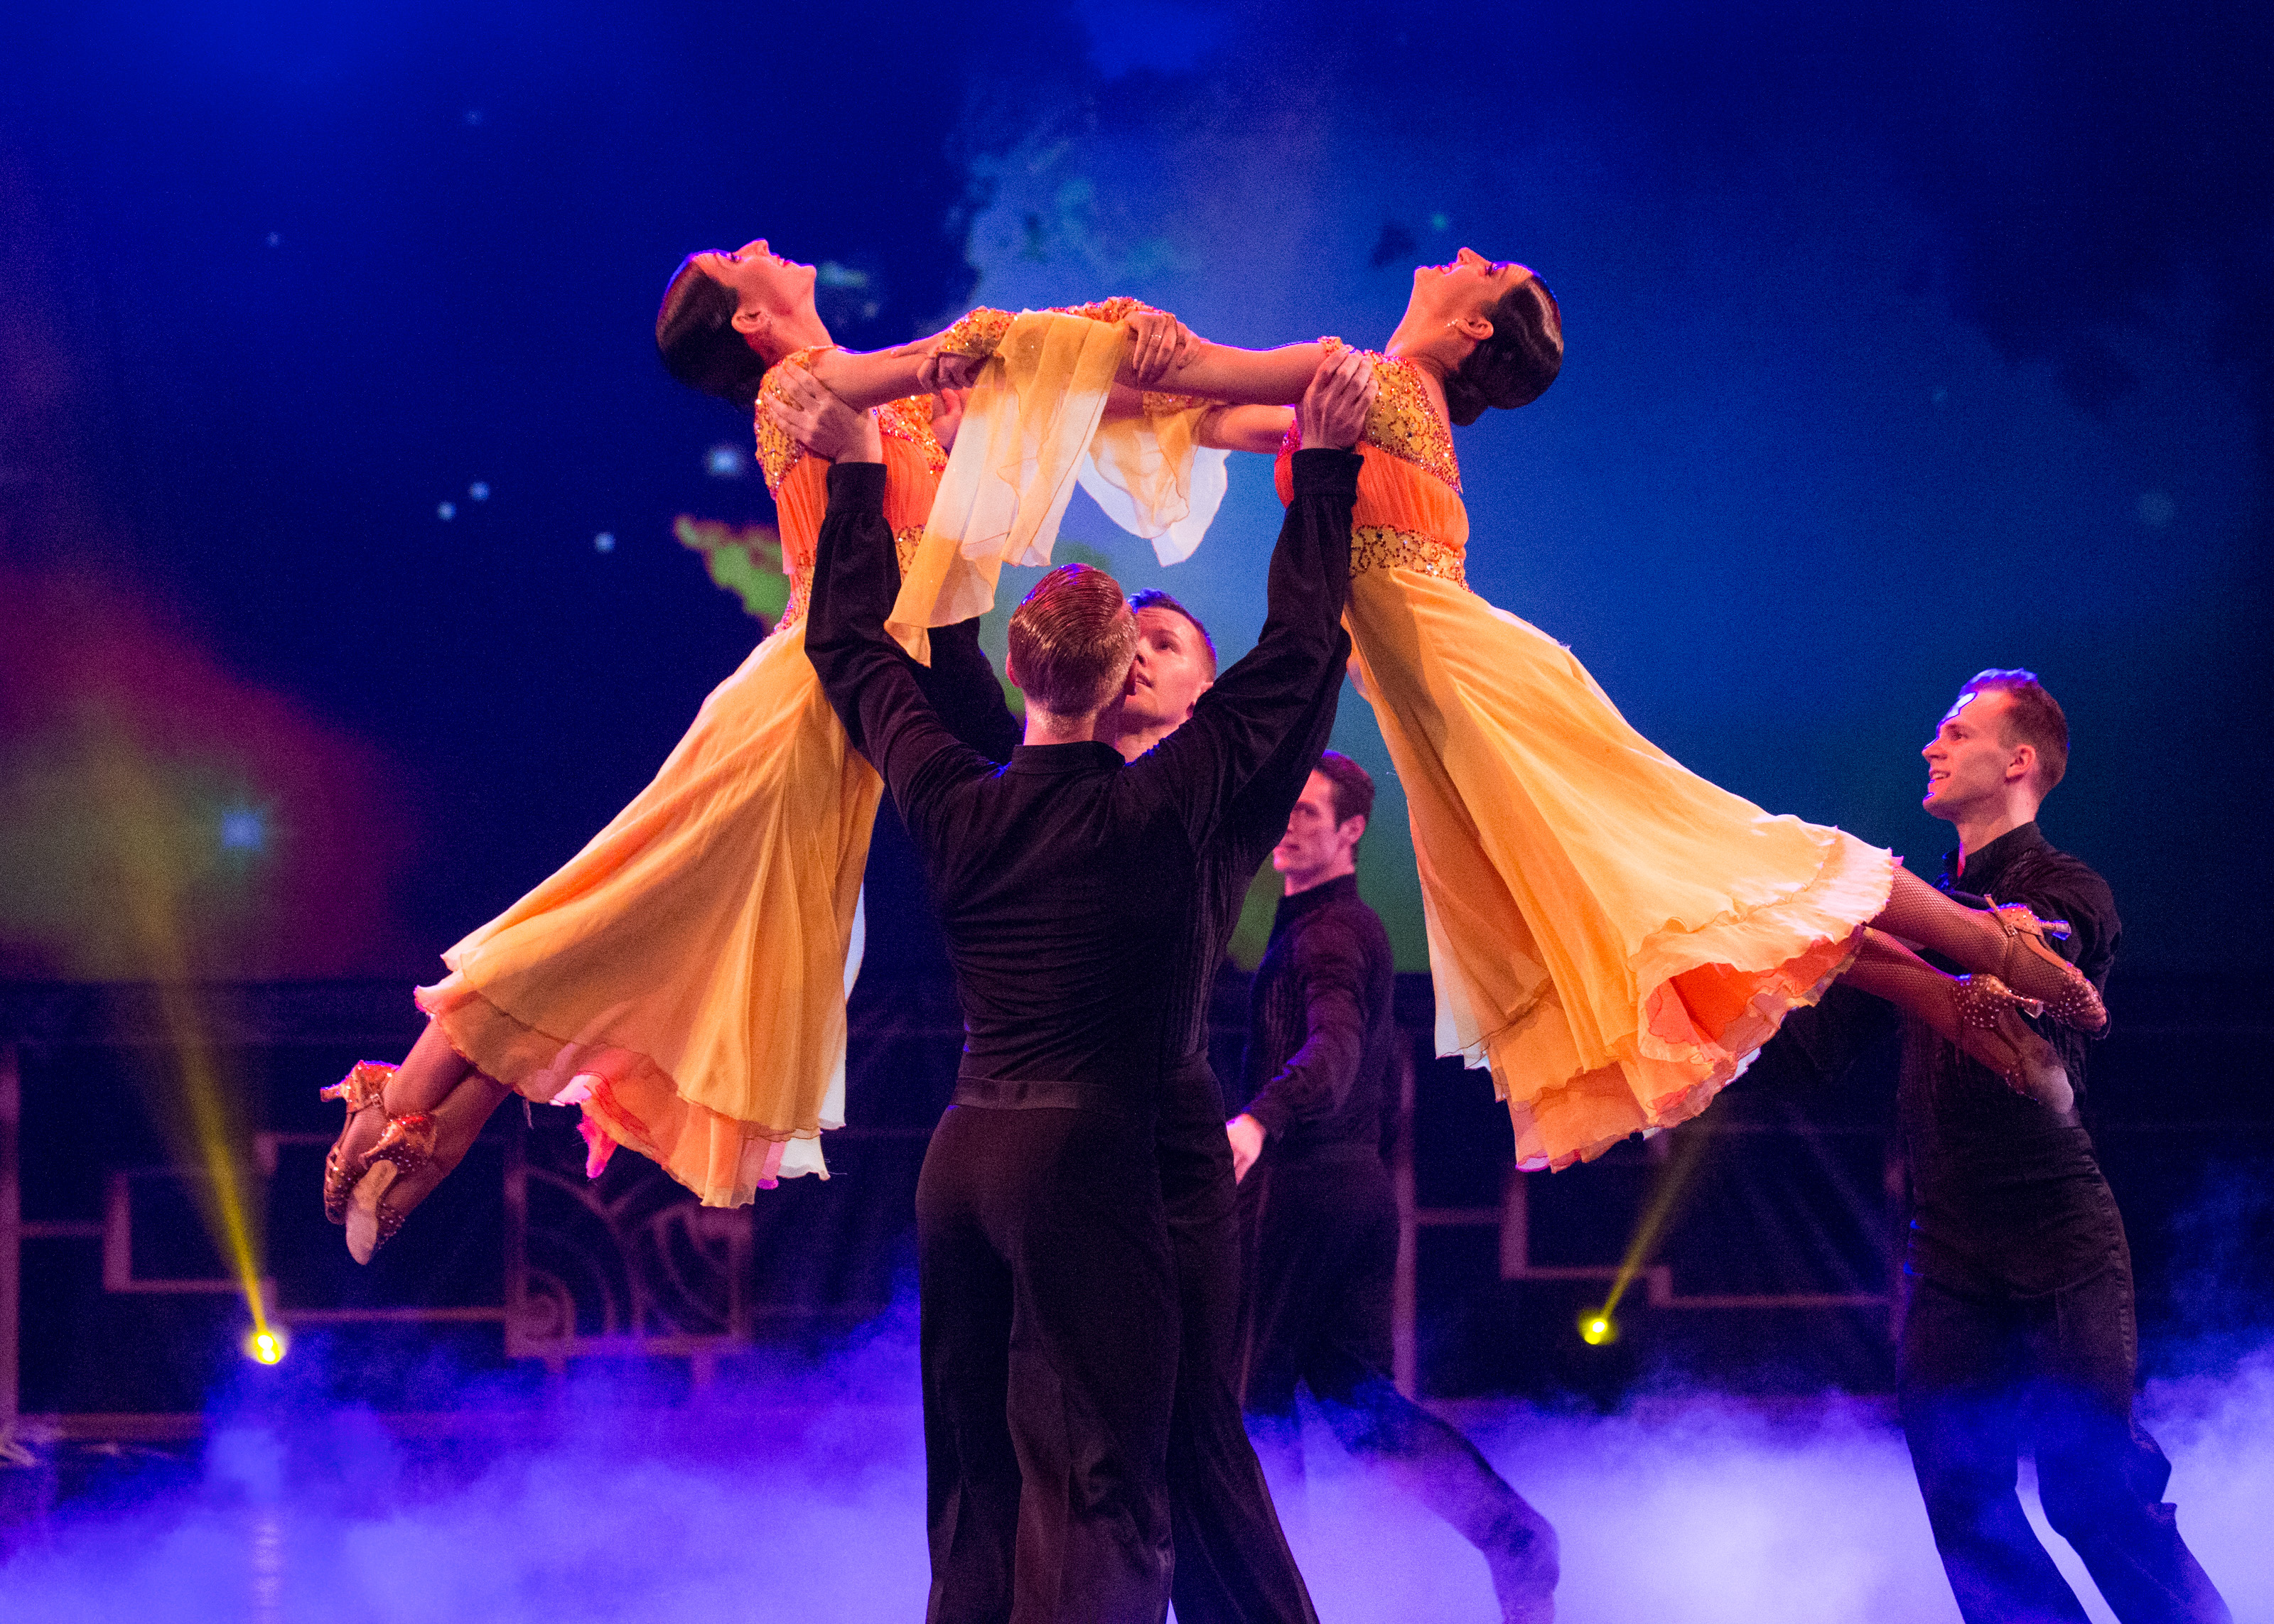 1604-19 0316  1604-19 BLR Ballroom Concert Swing 'n' Sway  Director Curt Holman - BYUBDC Brigham Young University Ballroom Dance Company  April 7, 2016  Photography by Todd Wakefield/BYU  © BYU PHOTO 2016 All Rights Reserved photo@byu.edu  (801)422-7322